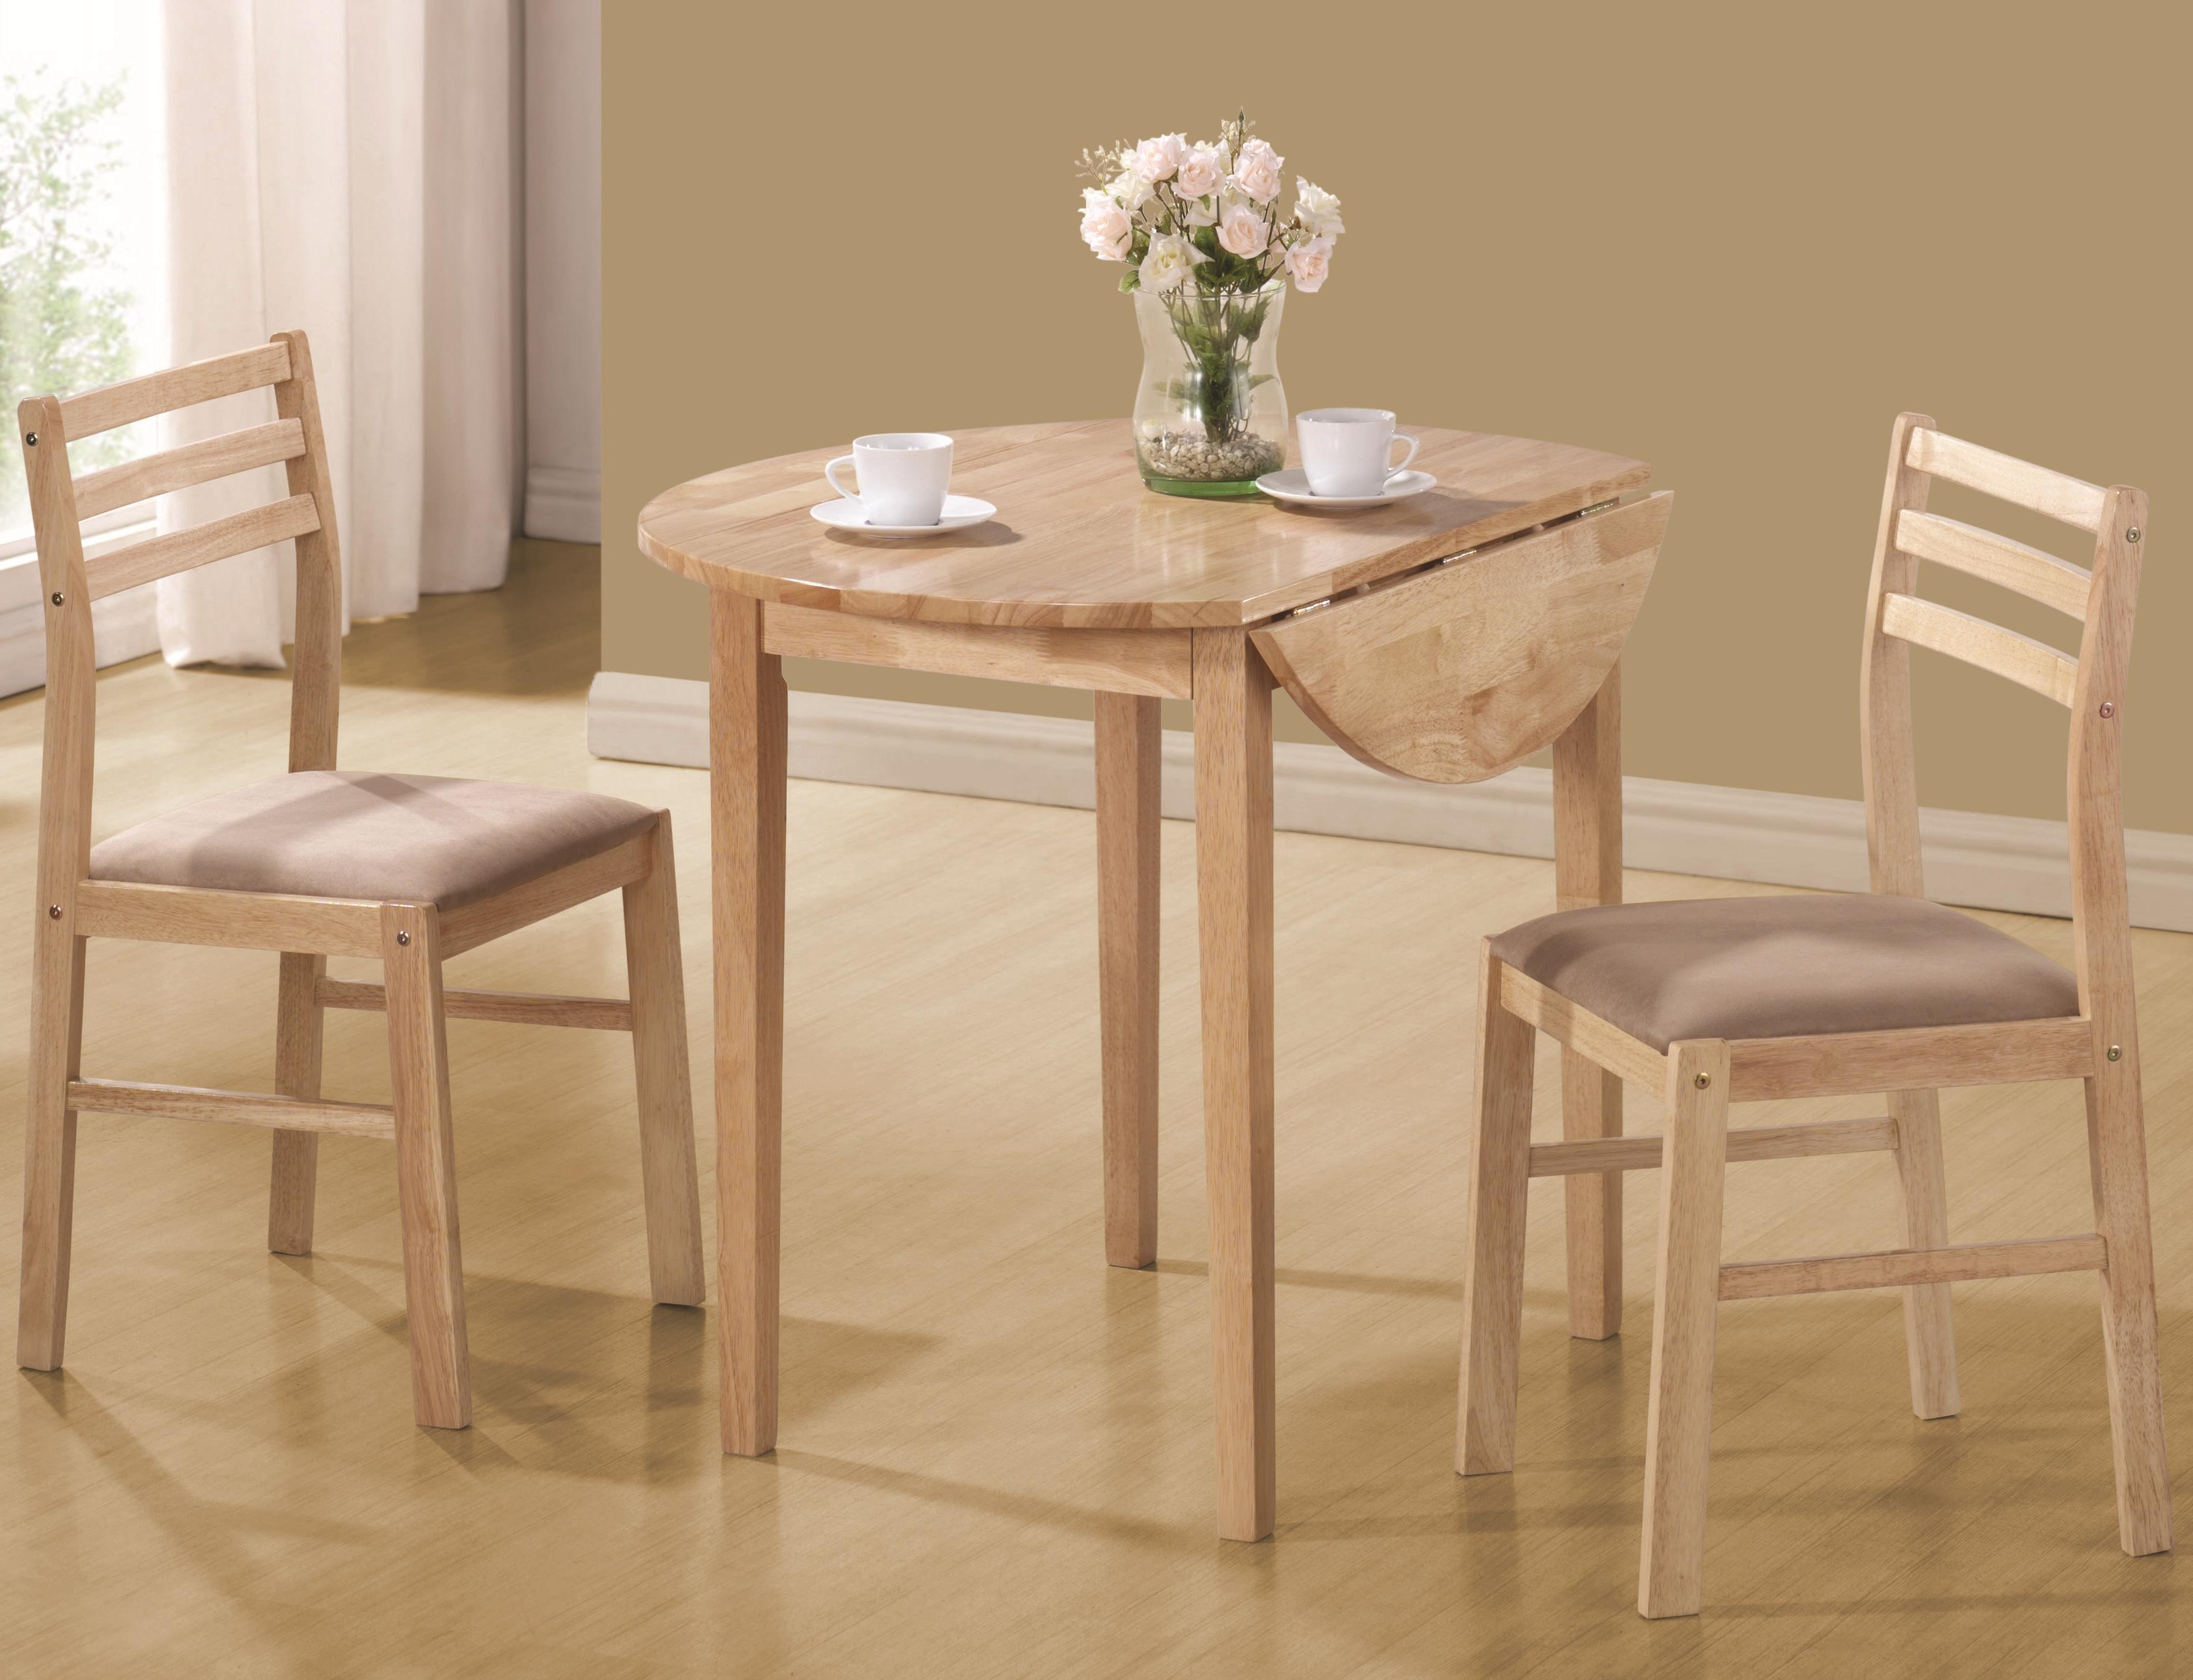 Dinettes Casual 3 Piece Table & Chair Setcoaster At Value City Furniture Inside 2018 3 Piece Breakfast Dining Sets (View 7 of 20)